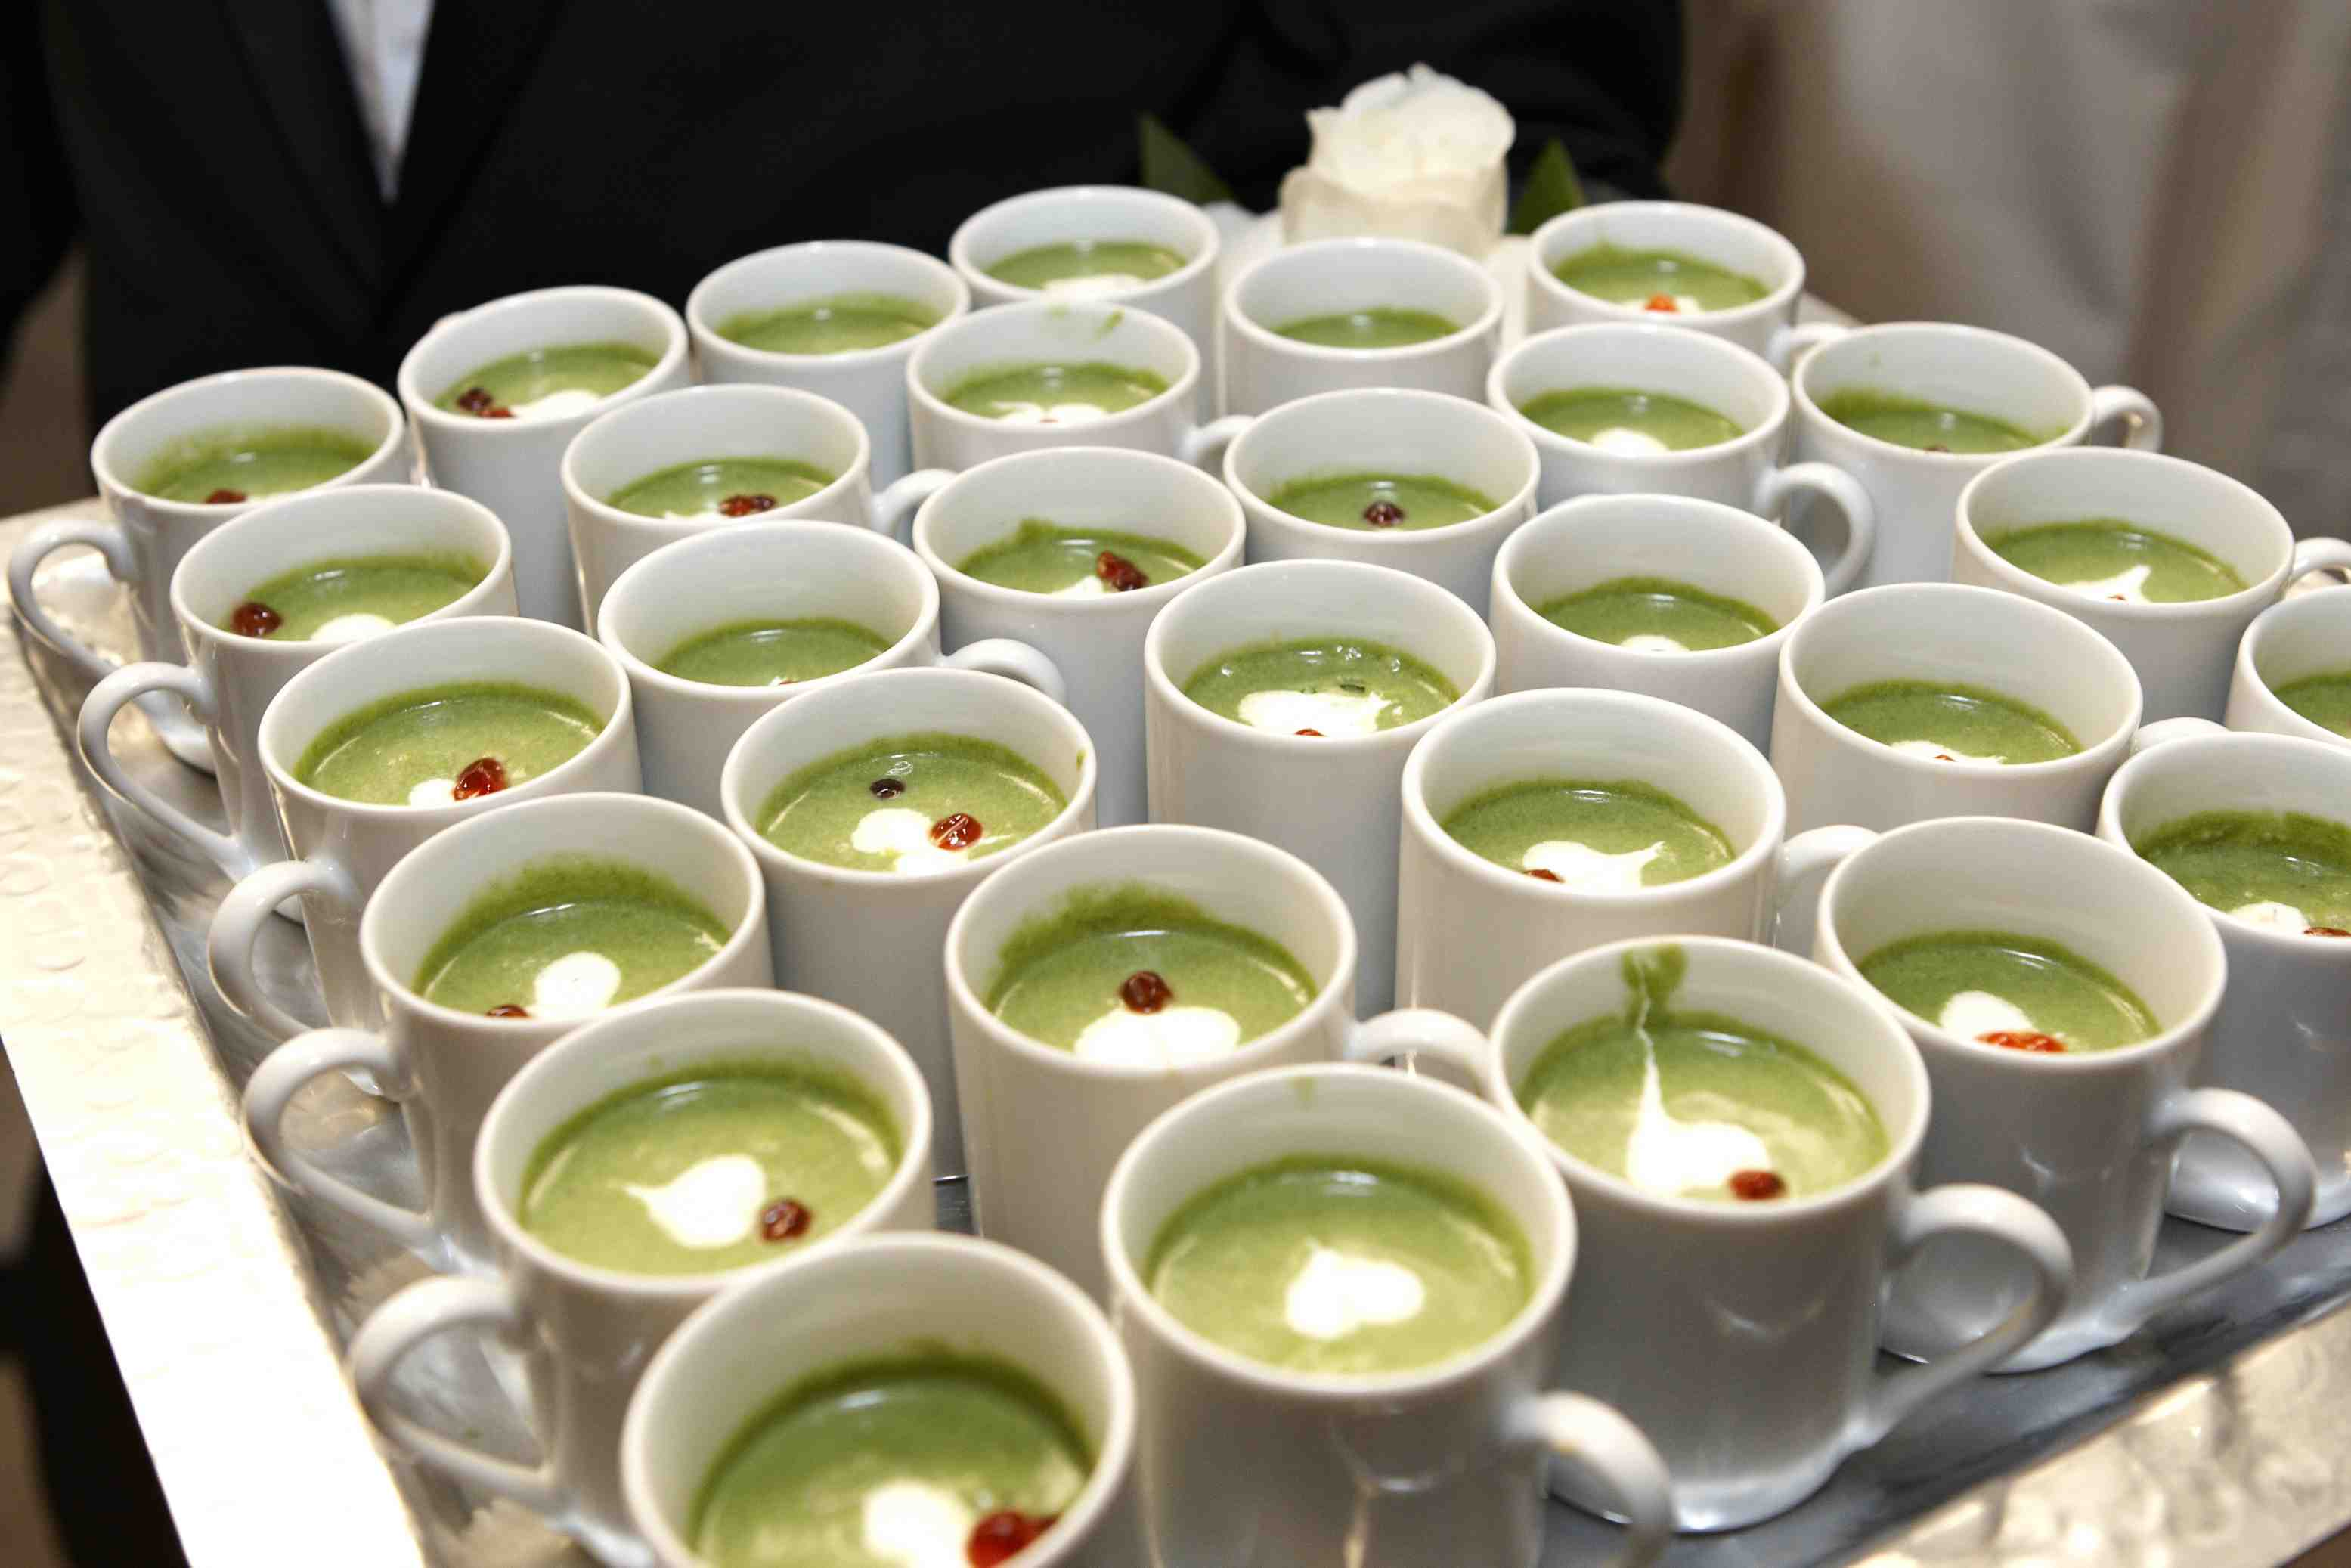 Mugs filled with light green soup